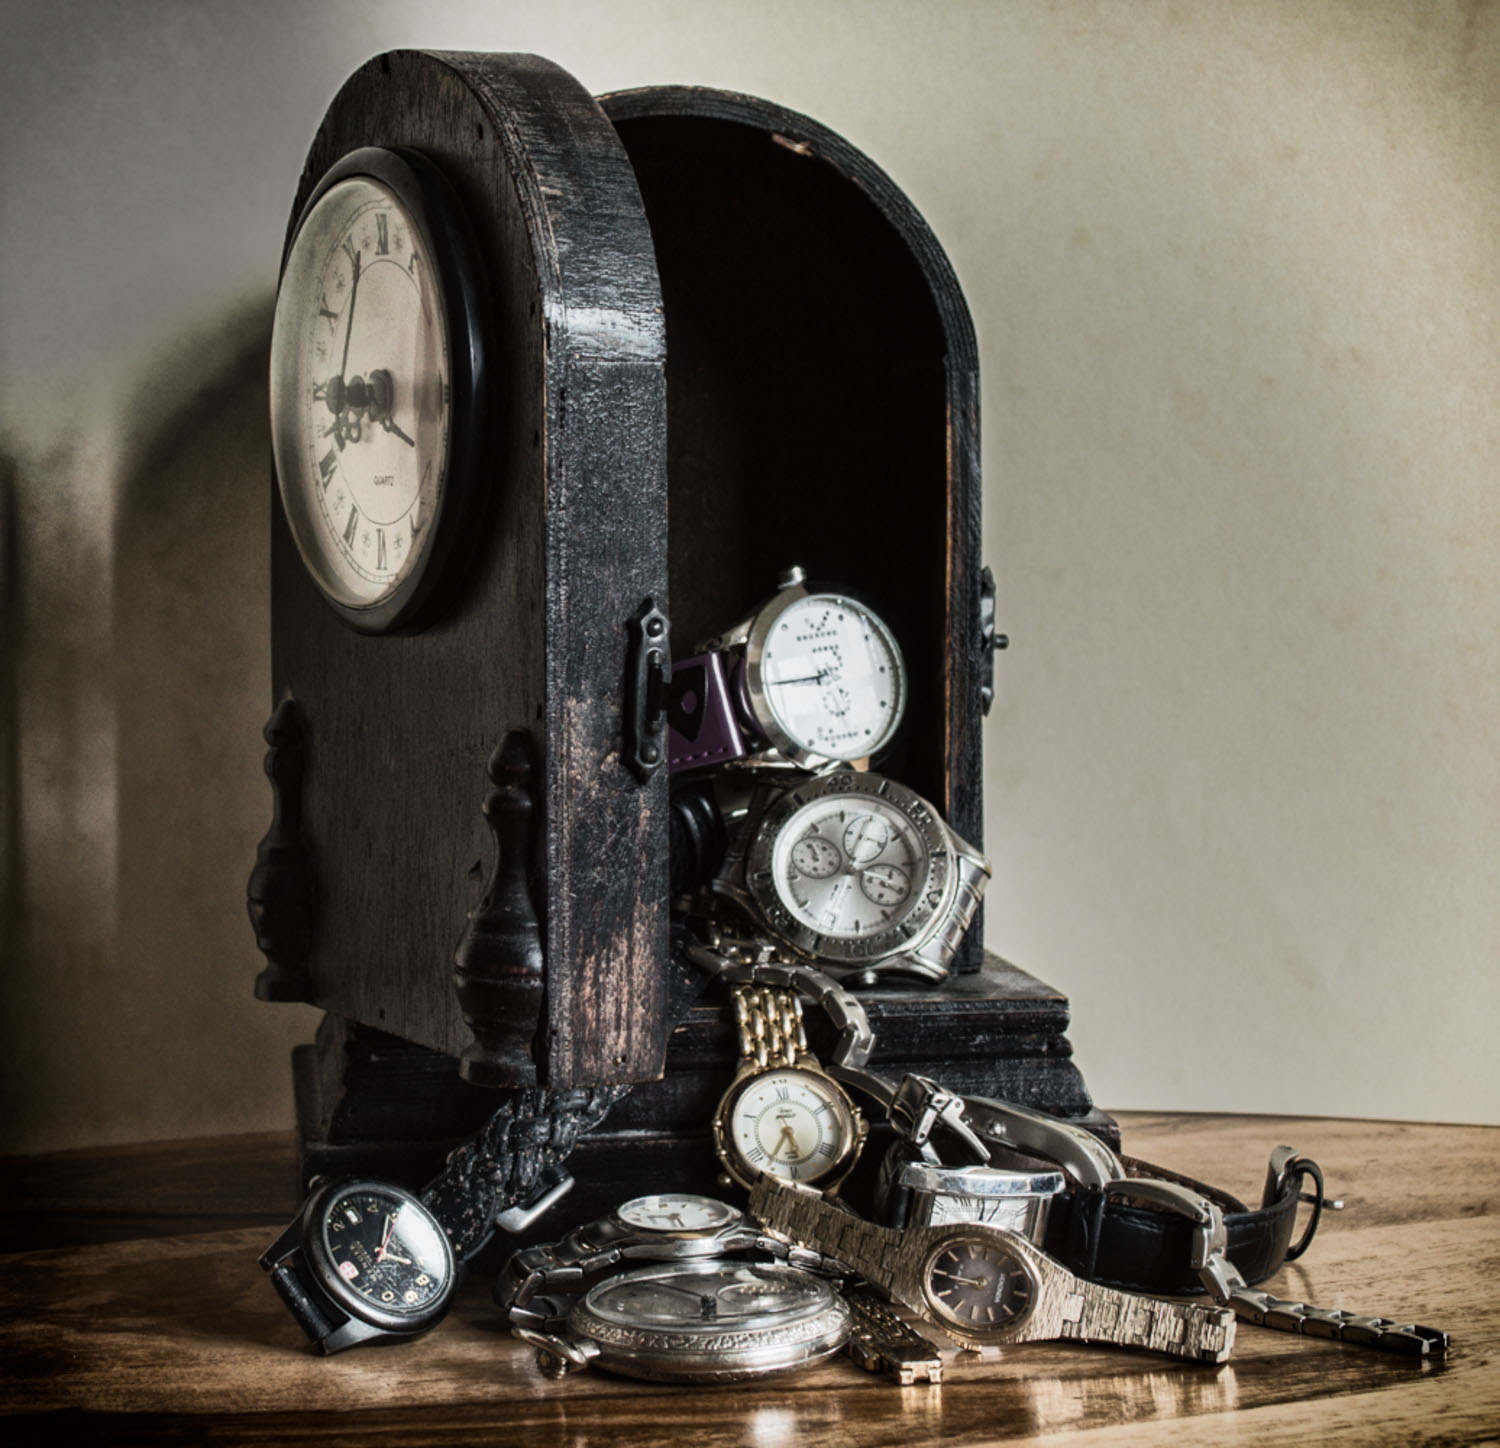 Still Life Assignment - By Louise Harris